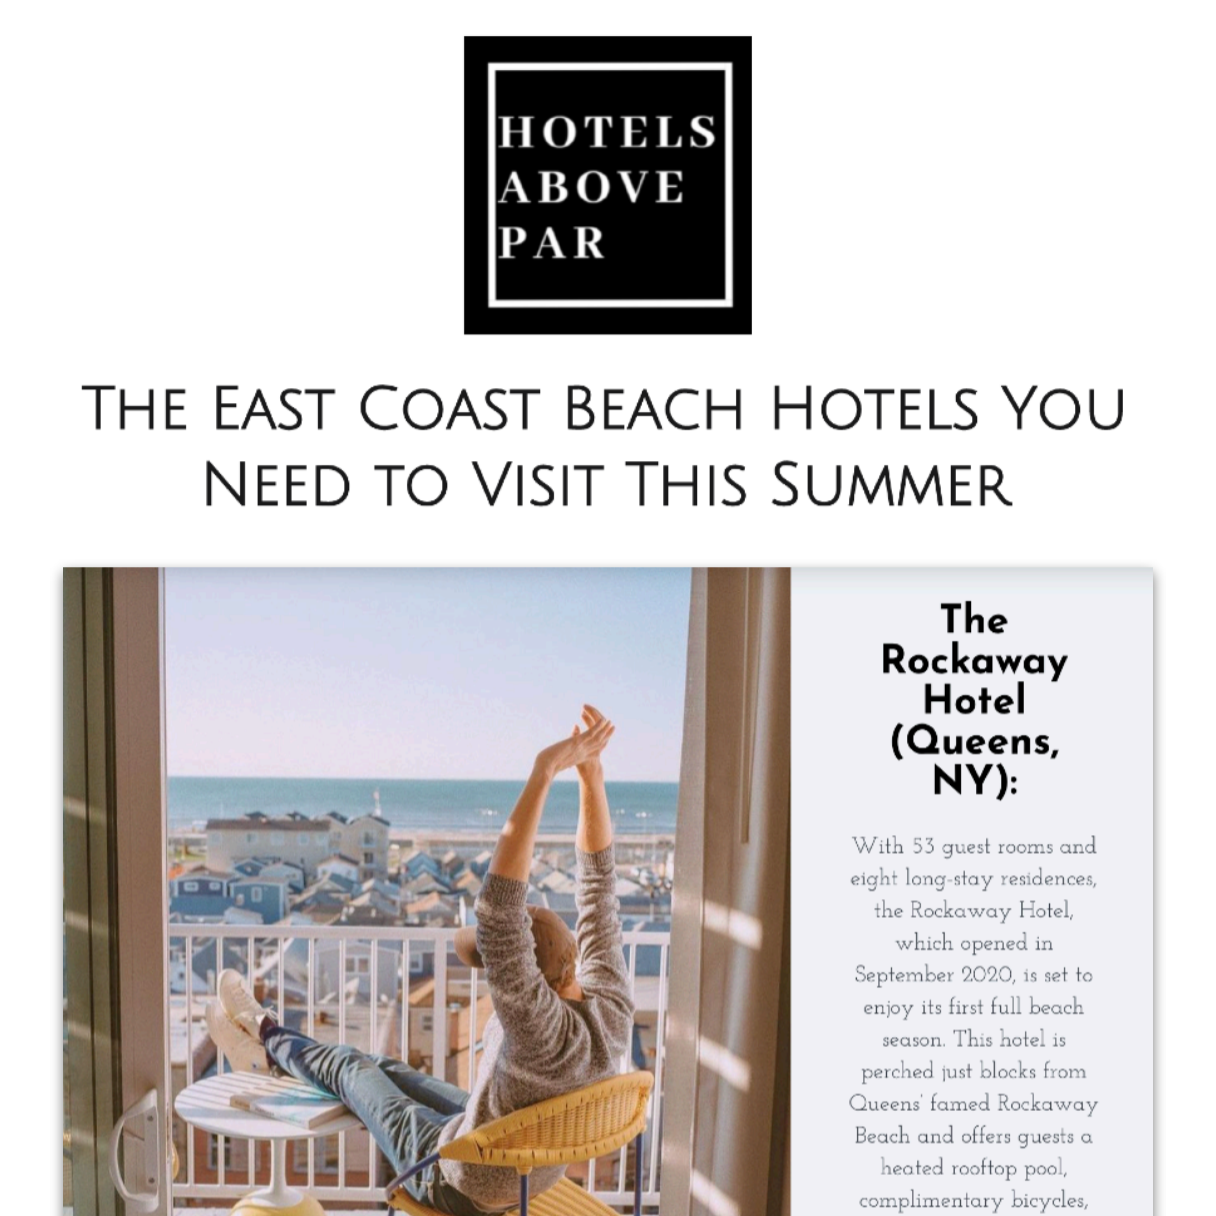 Article about The Rockaway Hotel in Hotels Above Par